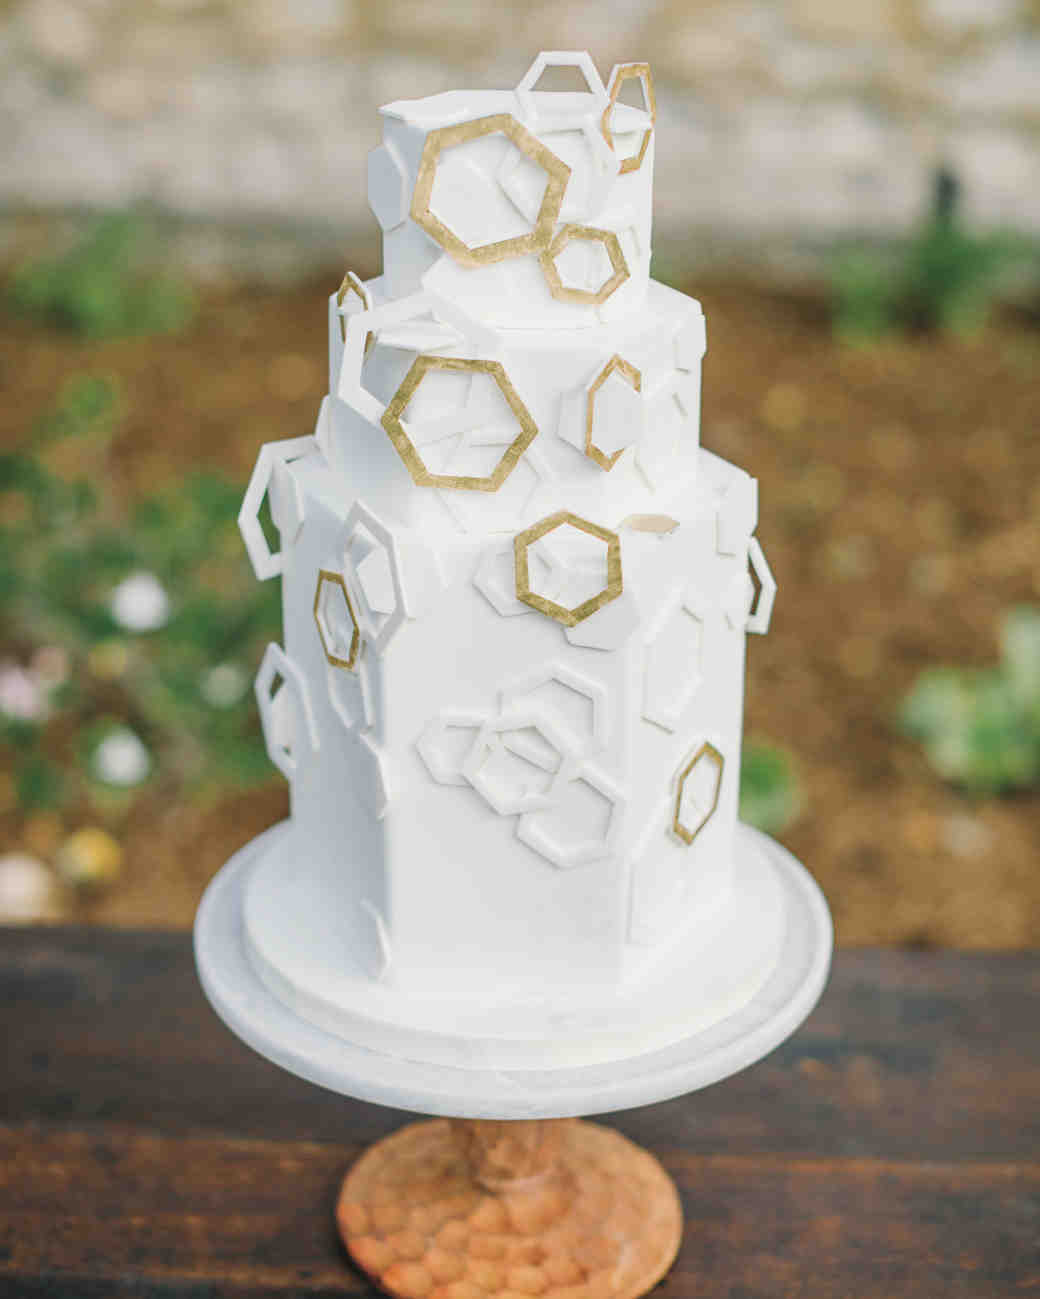 Geometric Three-Tiered White Wedding Cake with Gold and White Fondant Hexagons